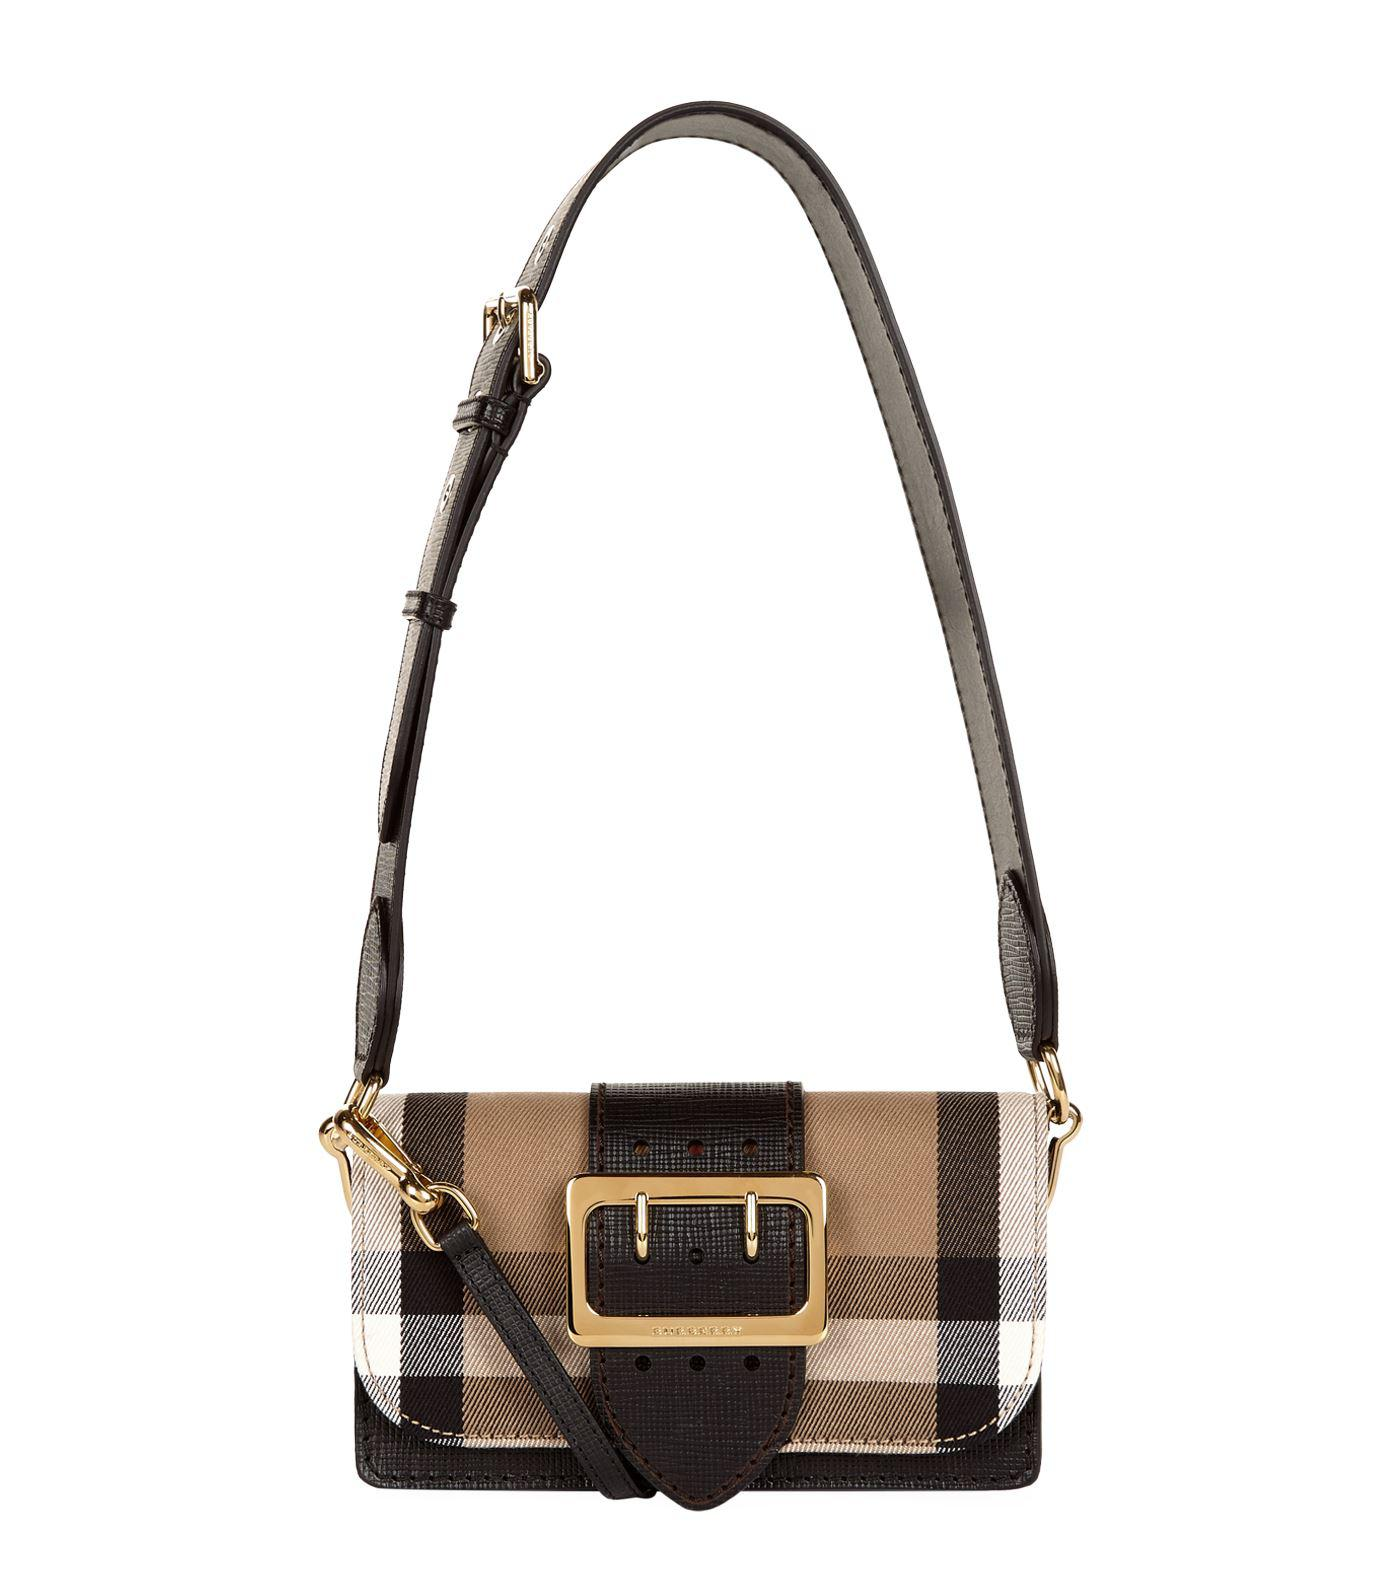 Burberry House Check Buckle Bag in Black - Lyst bb0f3f66fa